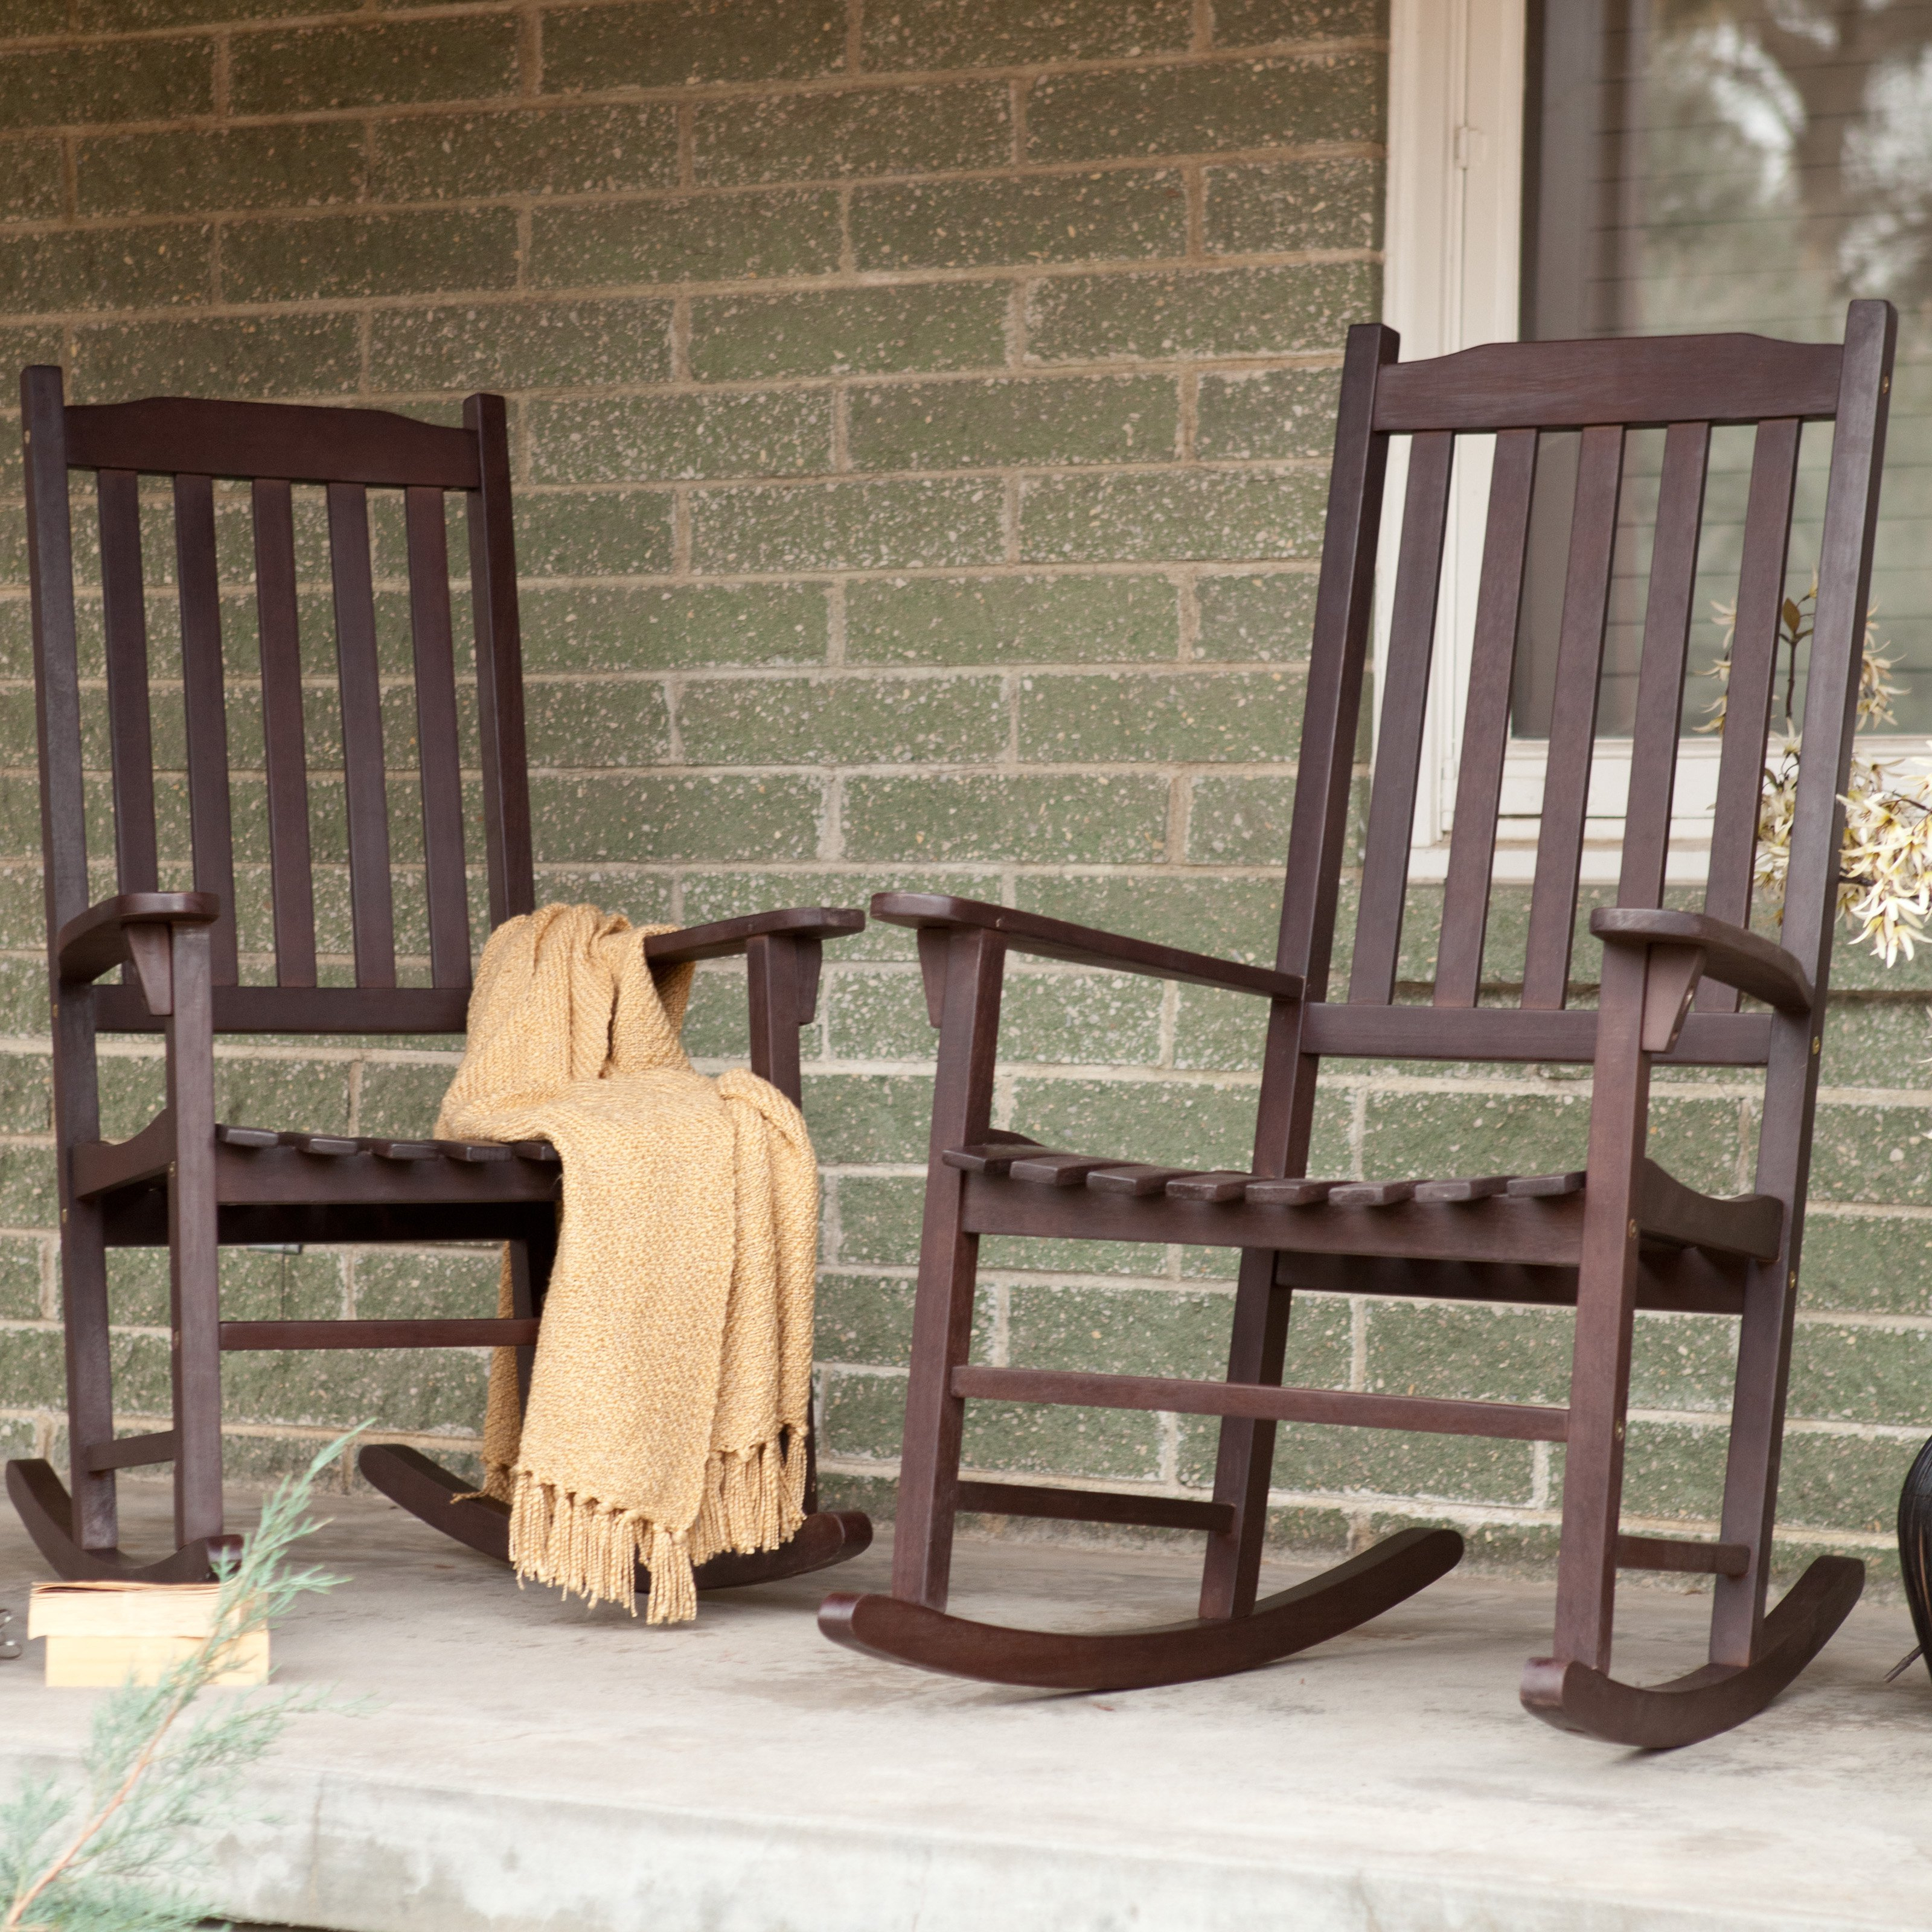 40 Outdoor Rocking Chair Porch, White Wooden Porch Rocking In Indoor / Outdoor Porch Slat Rocking Chairs (#1 of 20)